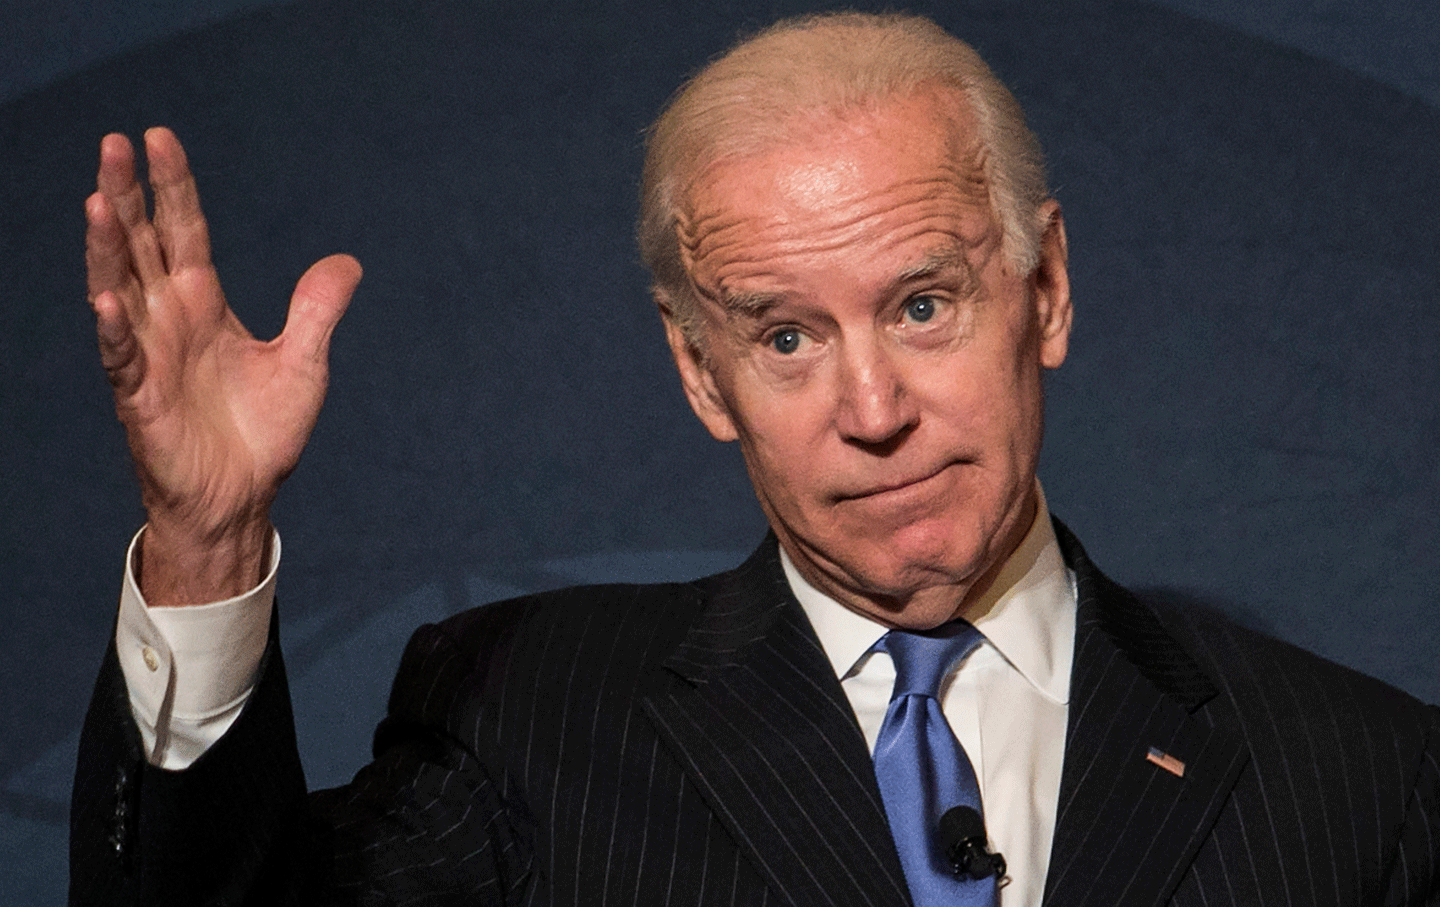 Joe Biden Positions Himself as the 'Anti-Bernie' | The Nation